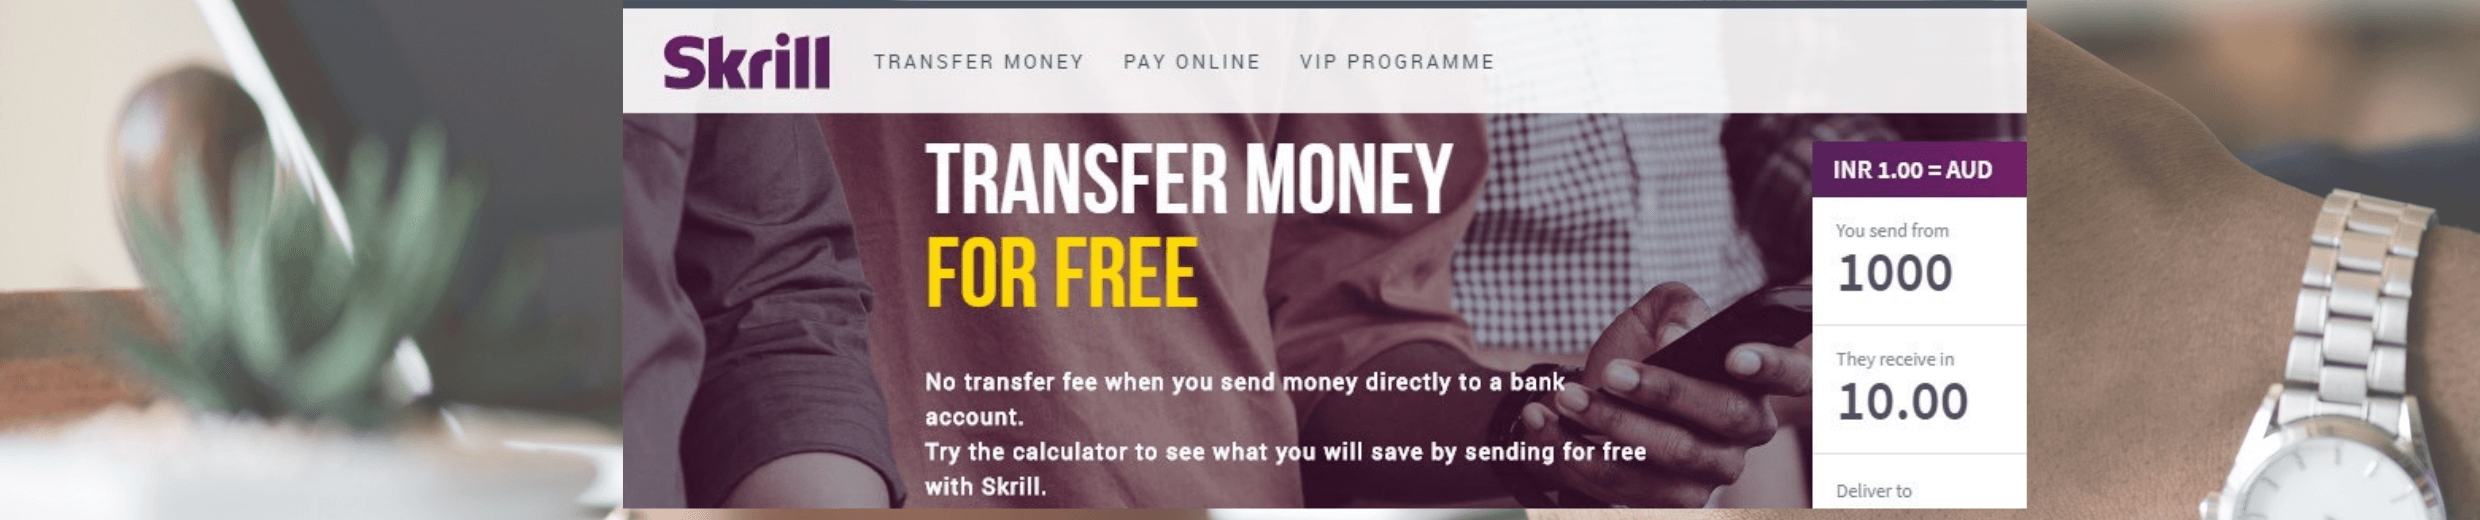 Skrill one of the top PayPal alternatives